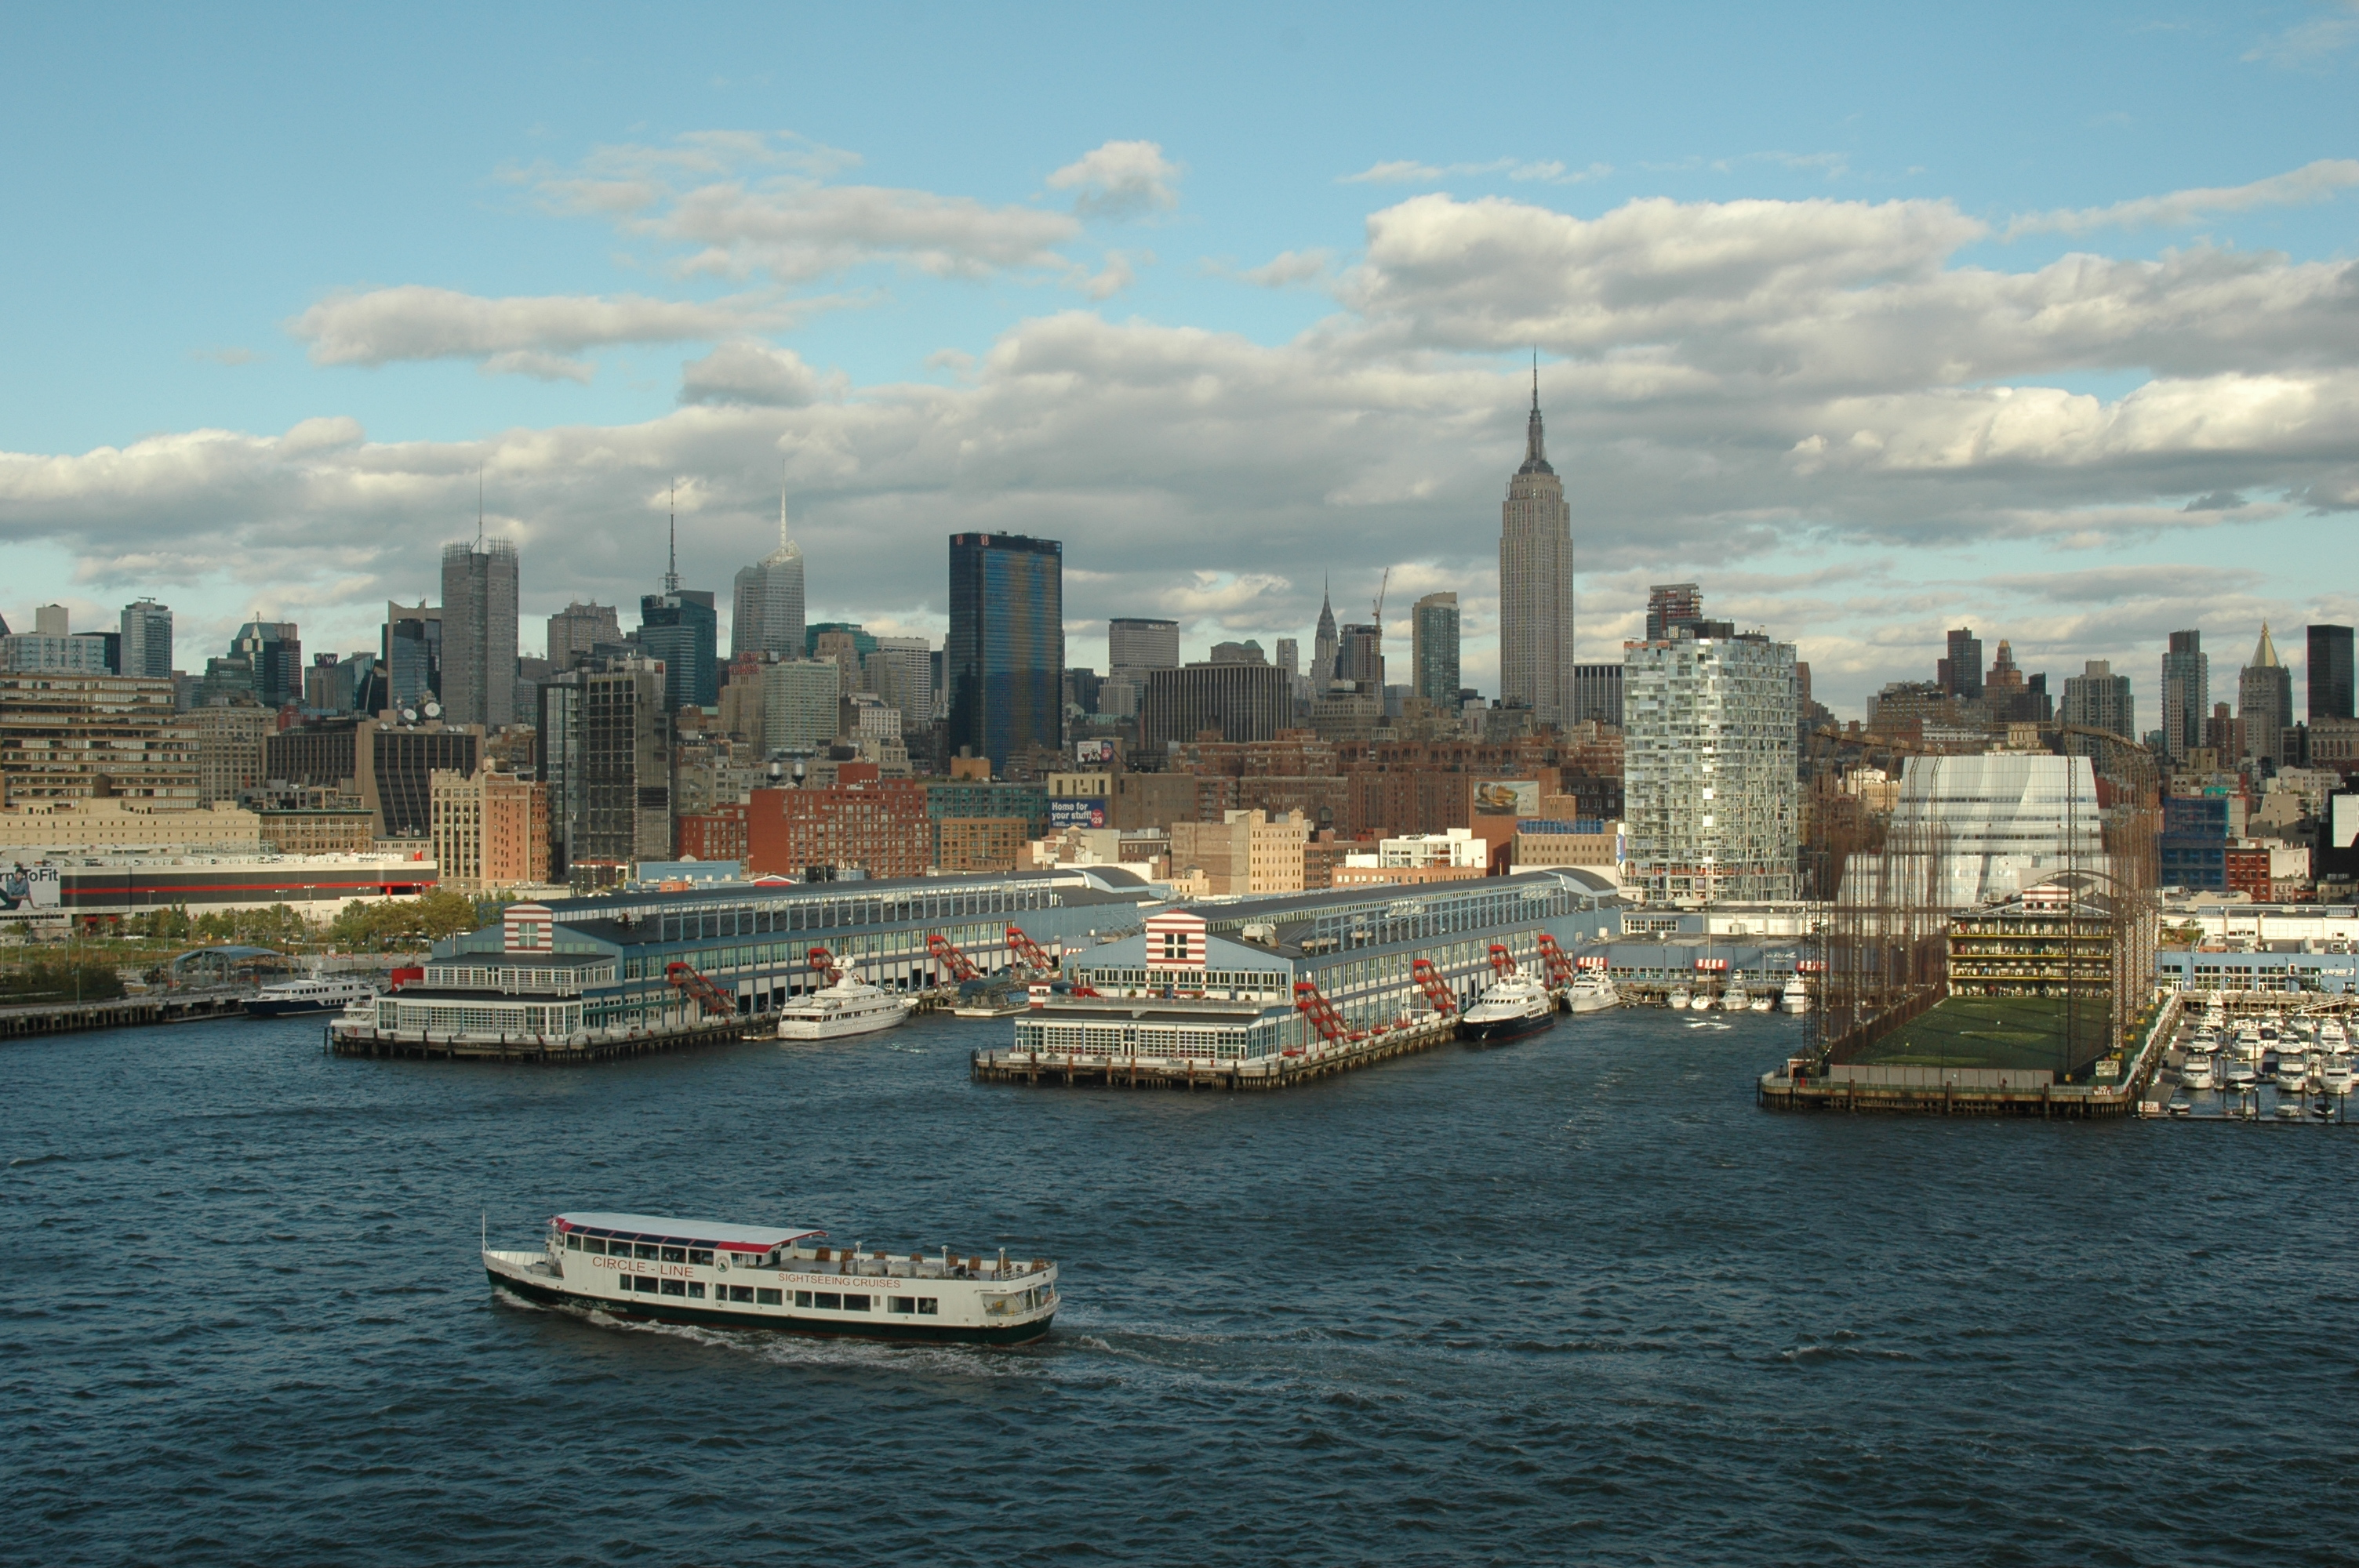 google map nyc with File New York City And The Circle Line Ferry  4197118683 on 2314680478 in addition File Wel e John F  Kennedy International Airport Sign besides 219794042 additionally Details besides Facebook In 2005 2.